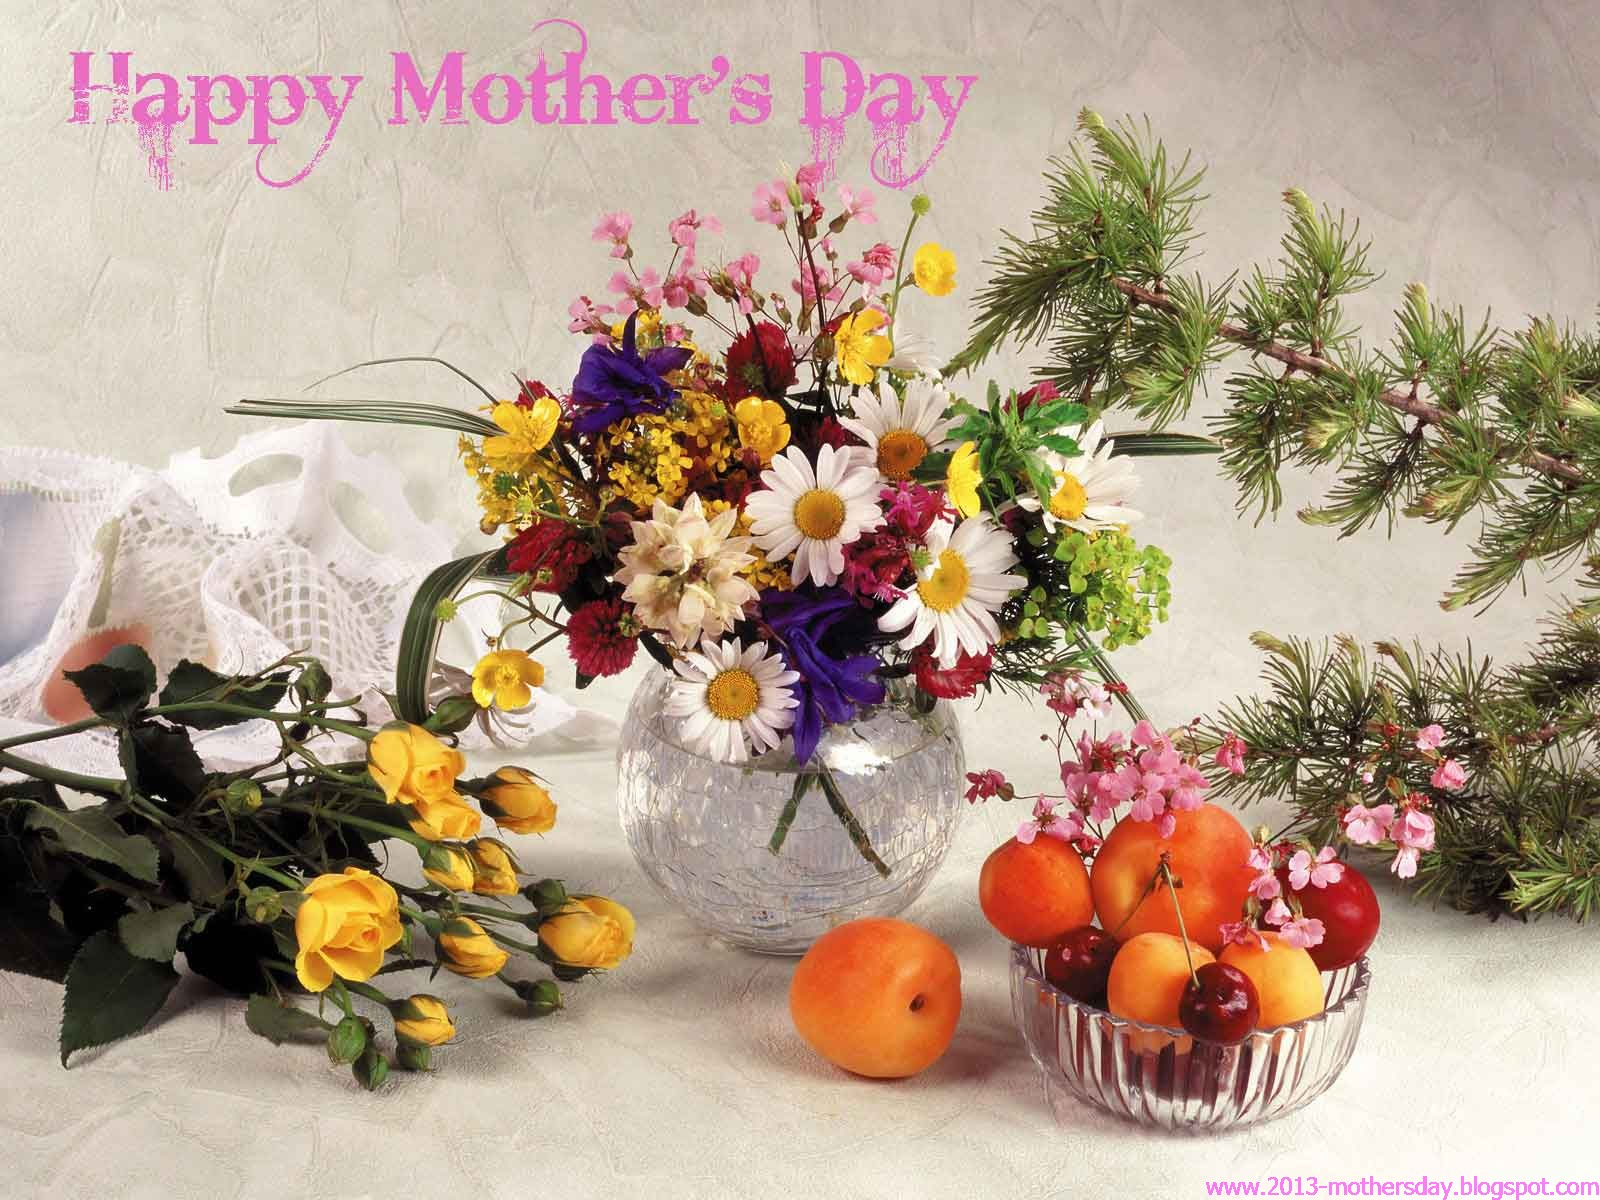 Wallpaper Of Happy Mothers Day: Wallpaper Free Download: Mothers Day 2013 Desktop